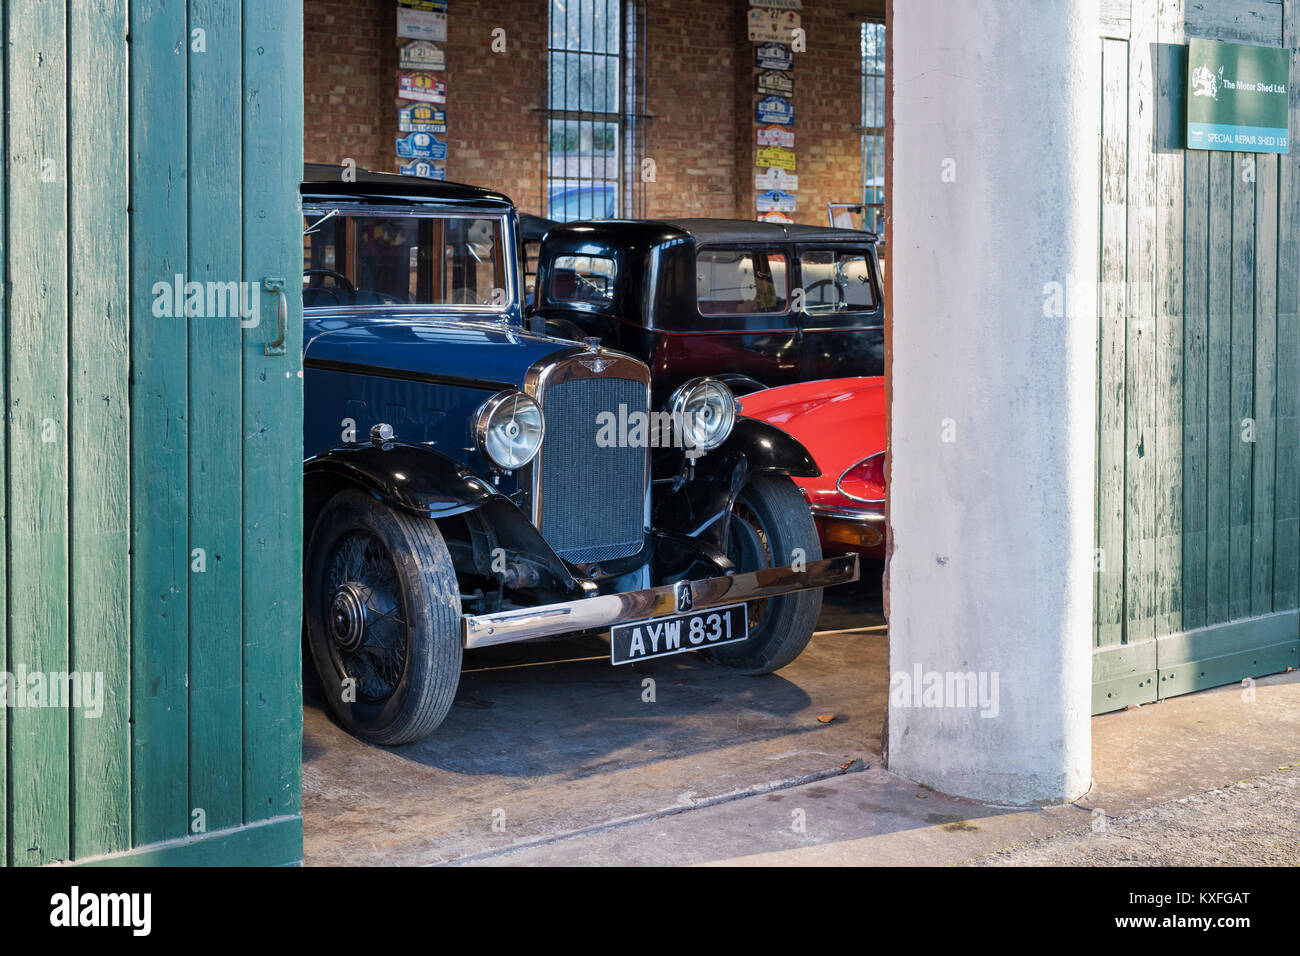 Oldtimer in der Garage im Bicester Heritage Center. Bicester, Oxfordshire, England. Stockbild